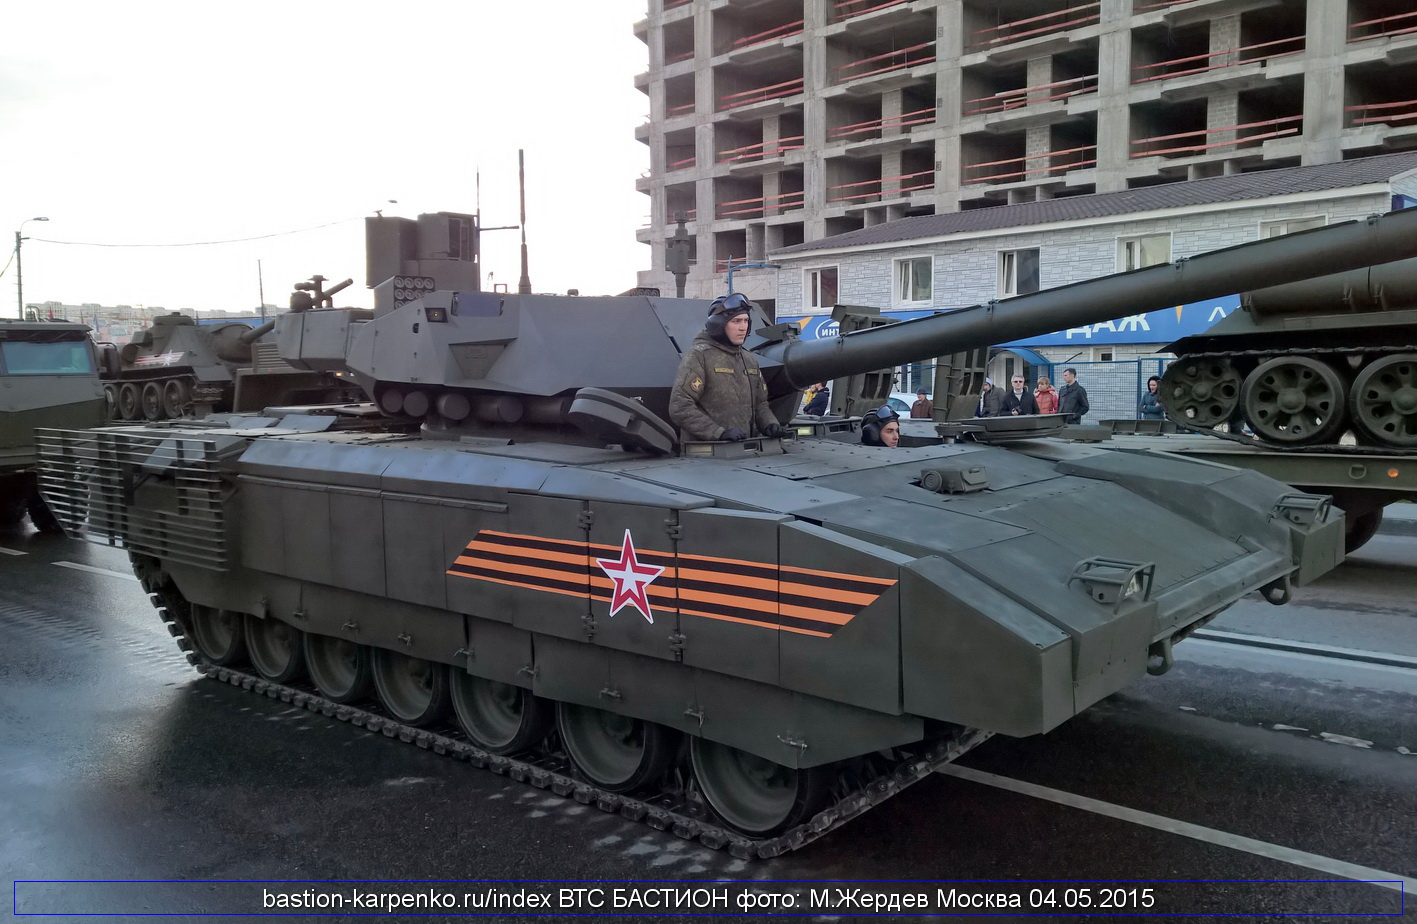 New Russian AFVs revealed to public – Tank and AFV News